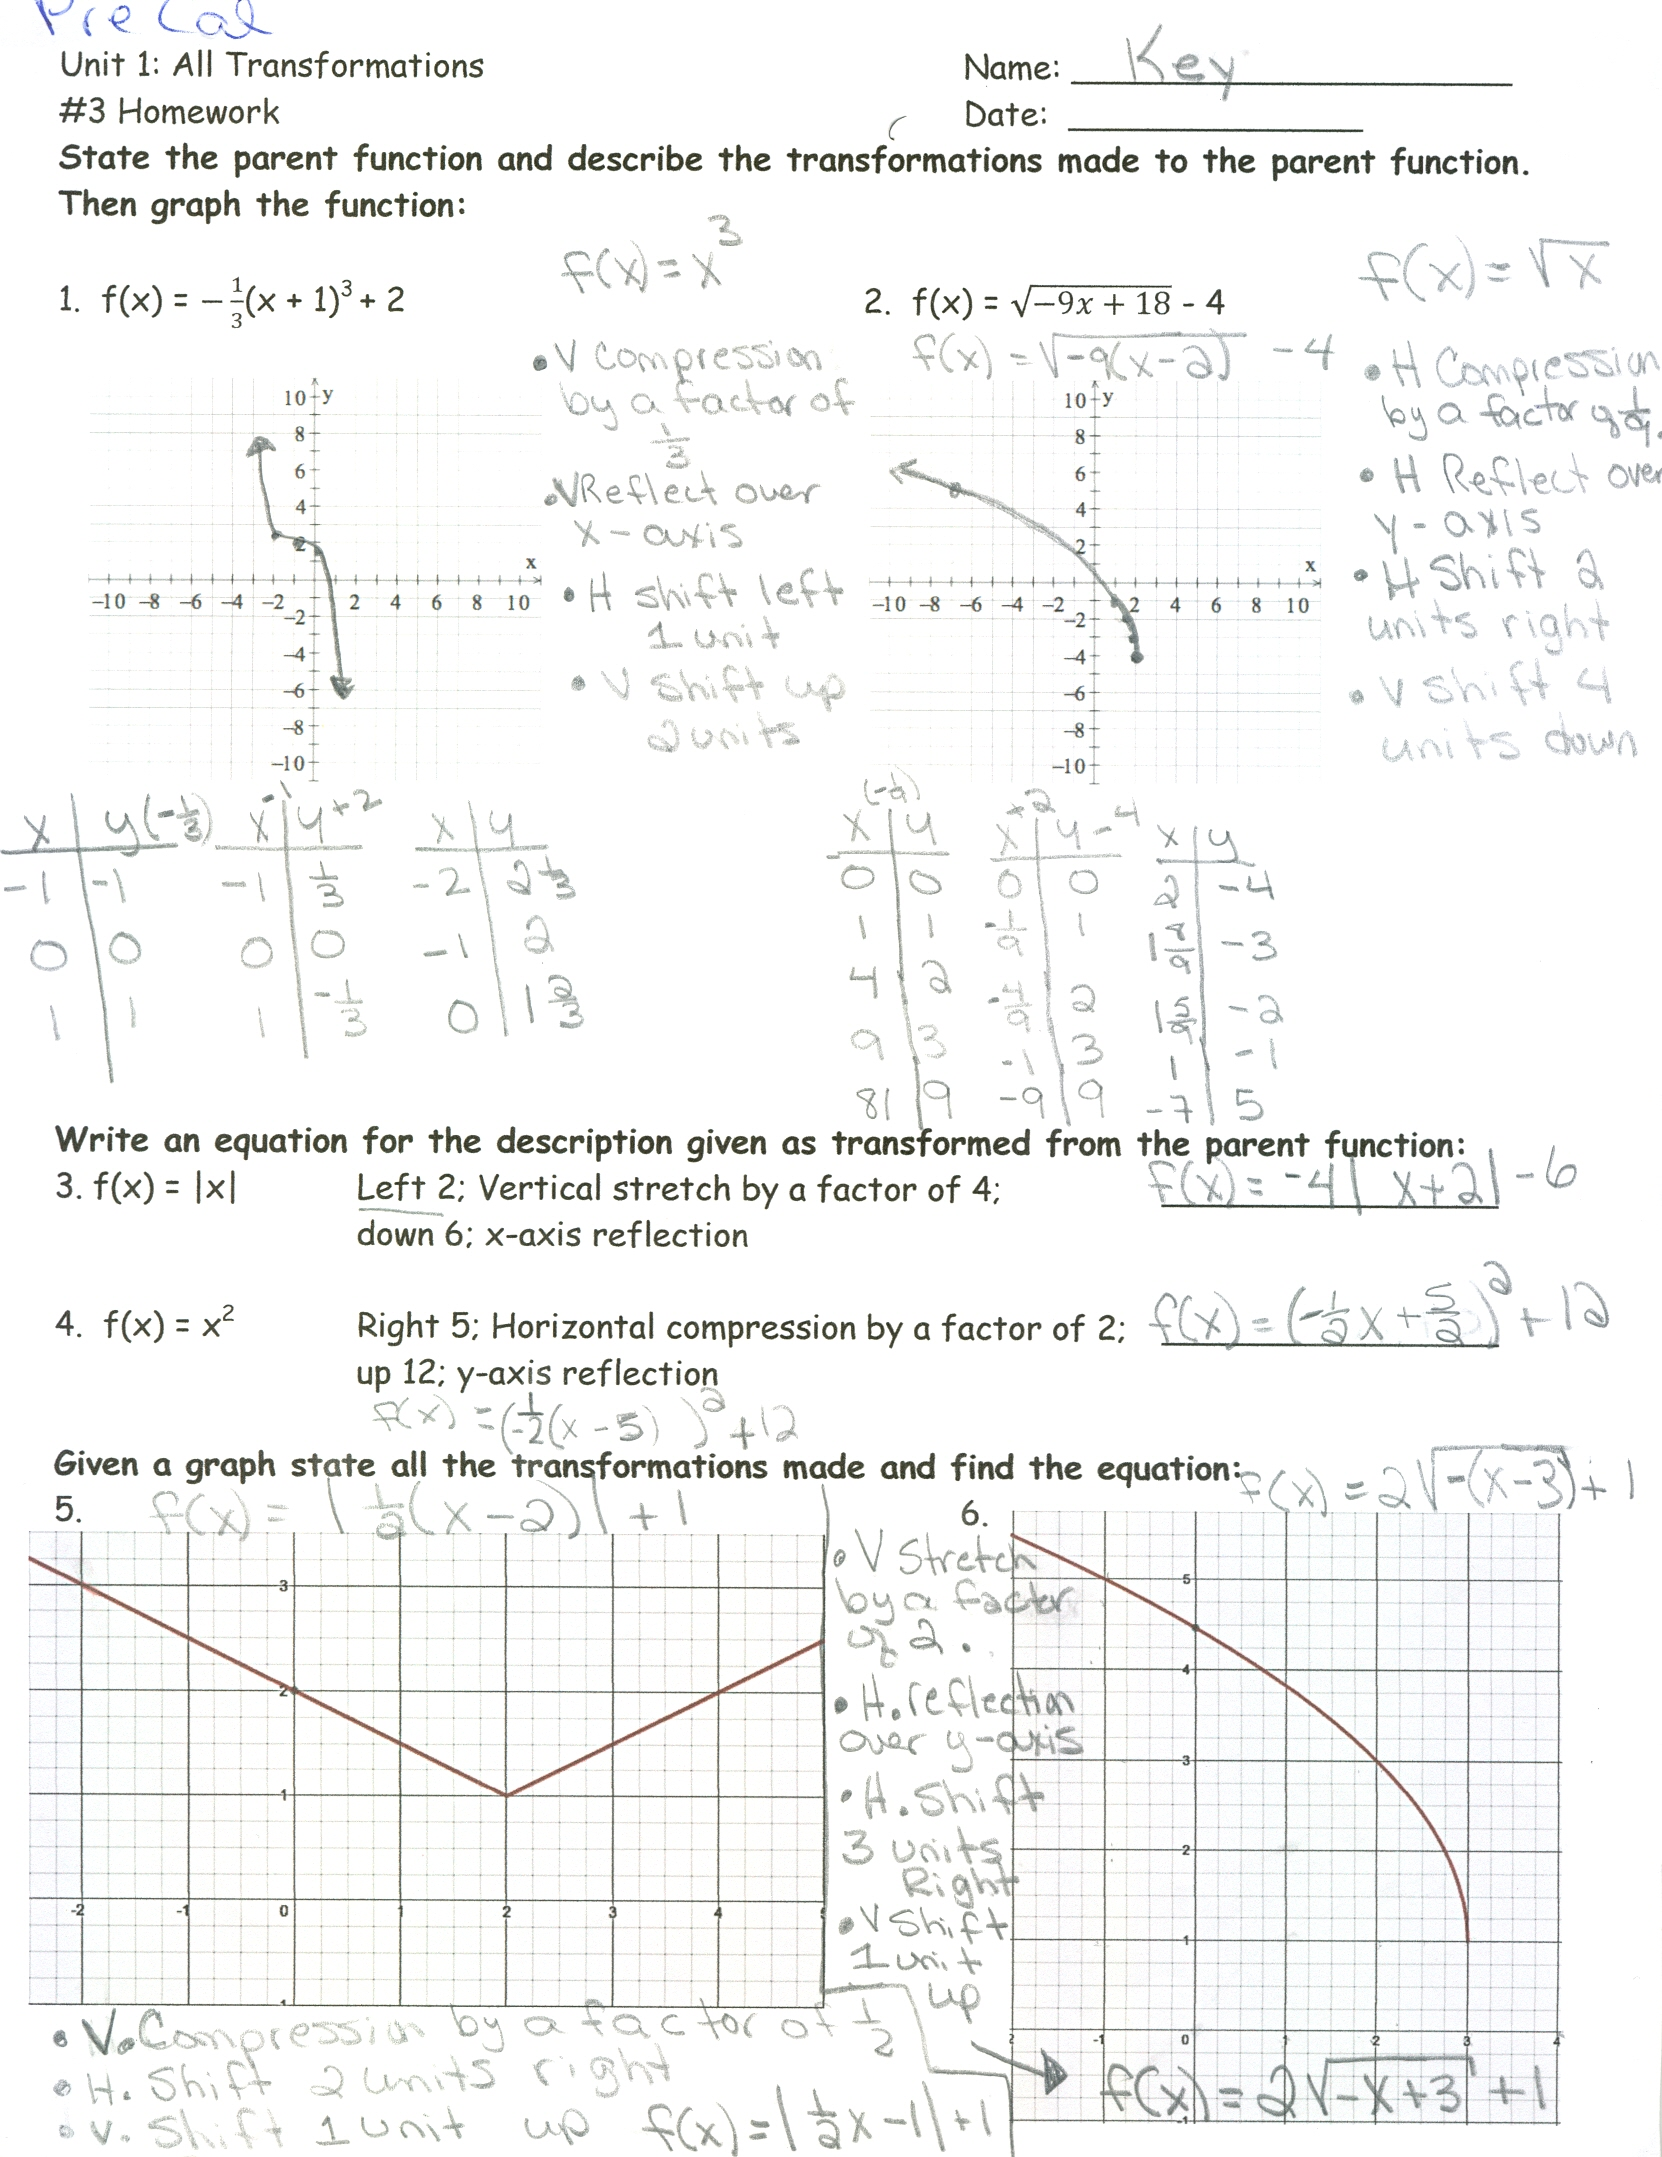 Worksheet 1 8 Homework Piecewise Functions Key